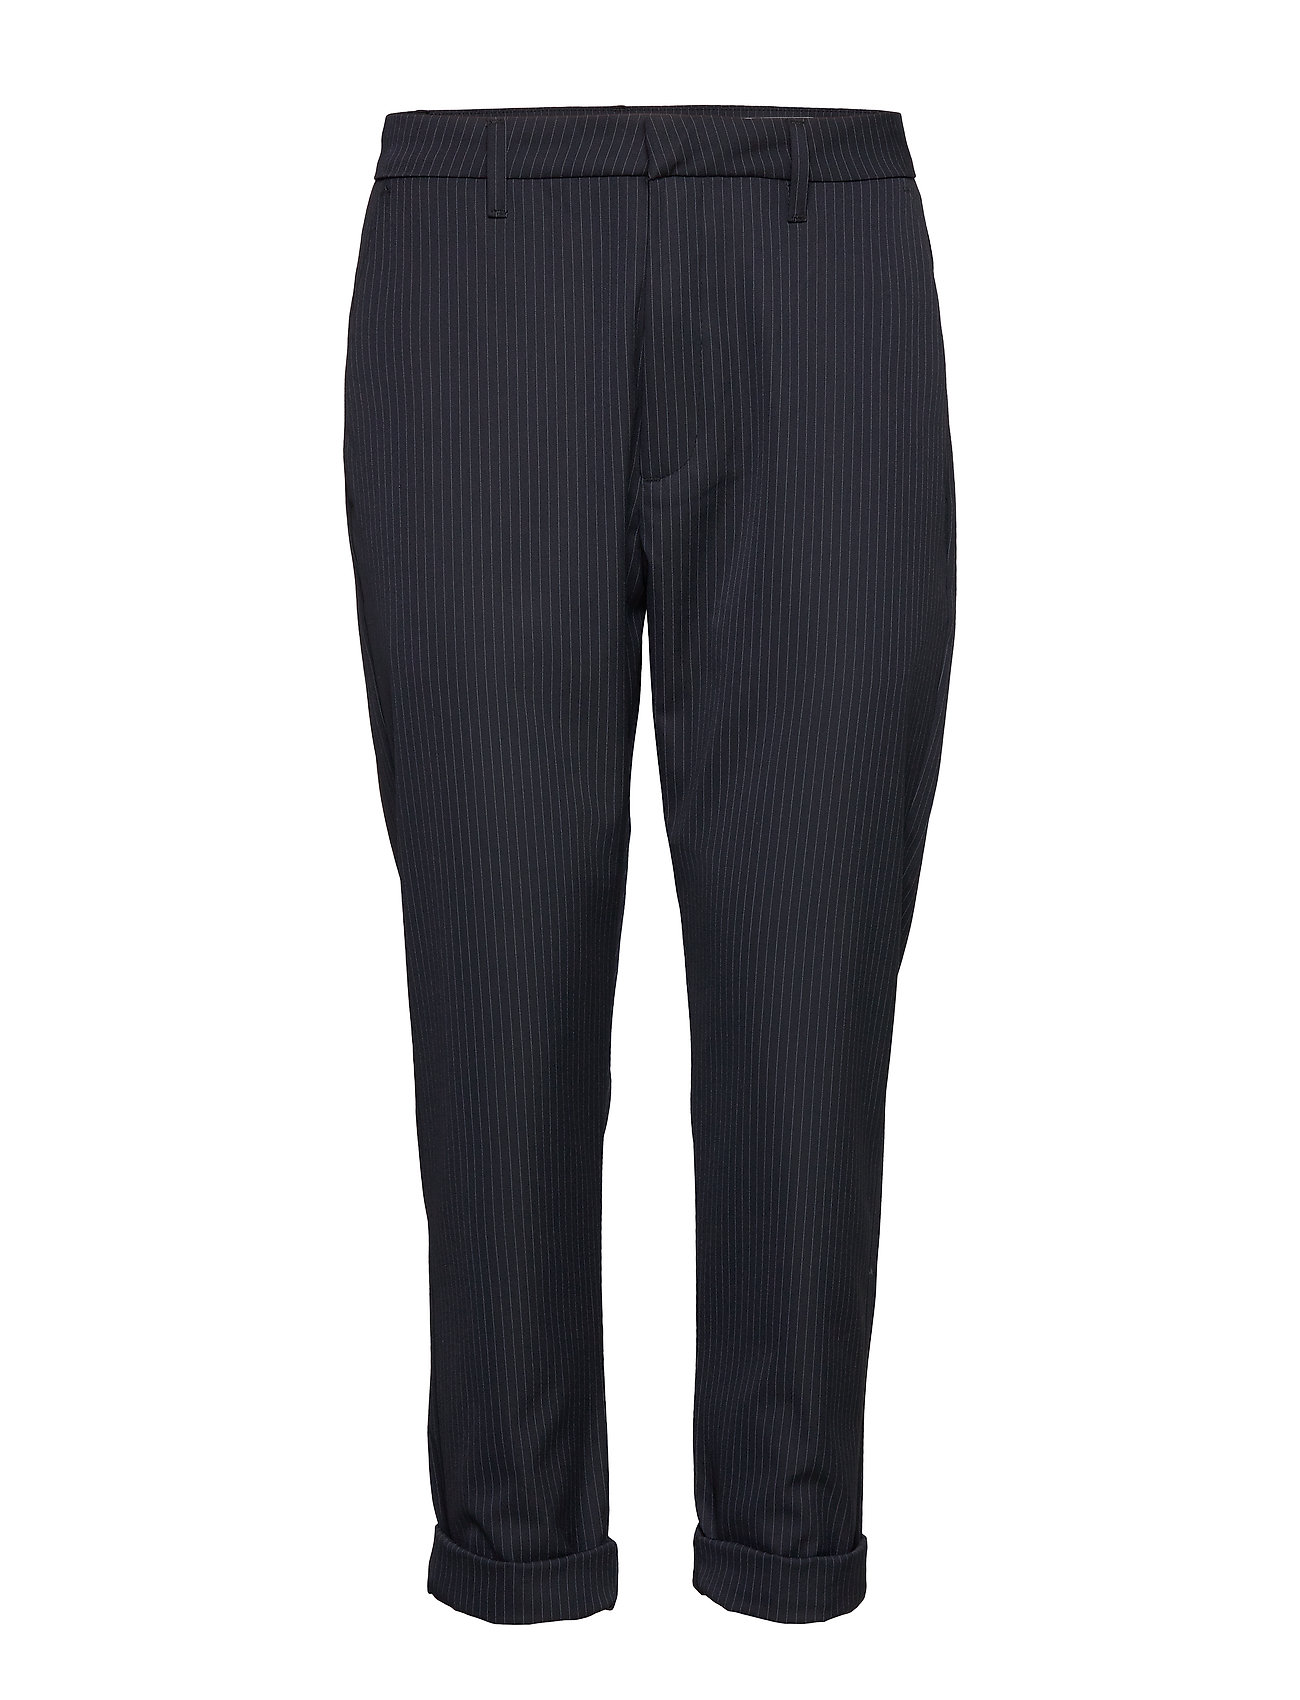 Hope News Trousers - DK BLUE PINSTRIPE